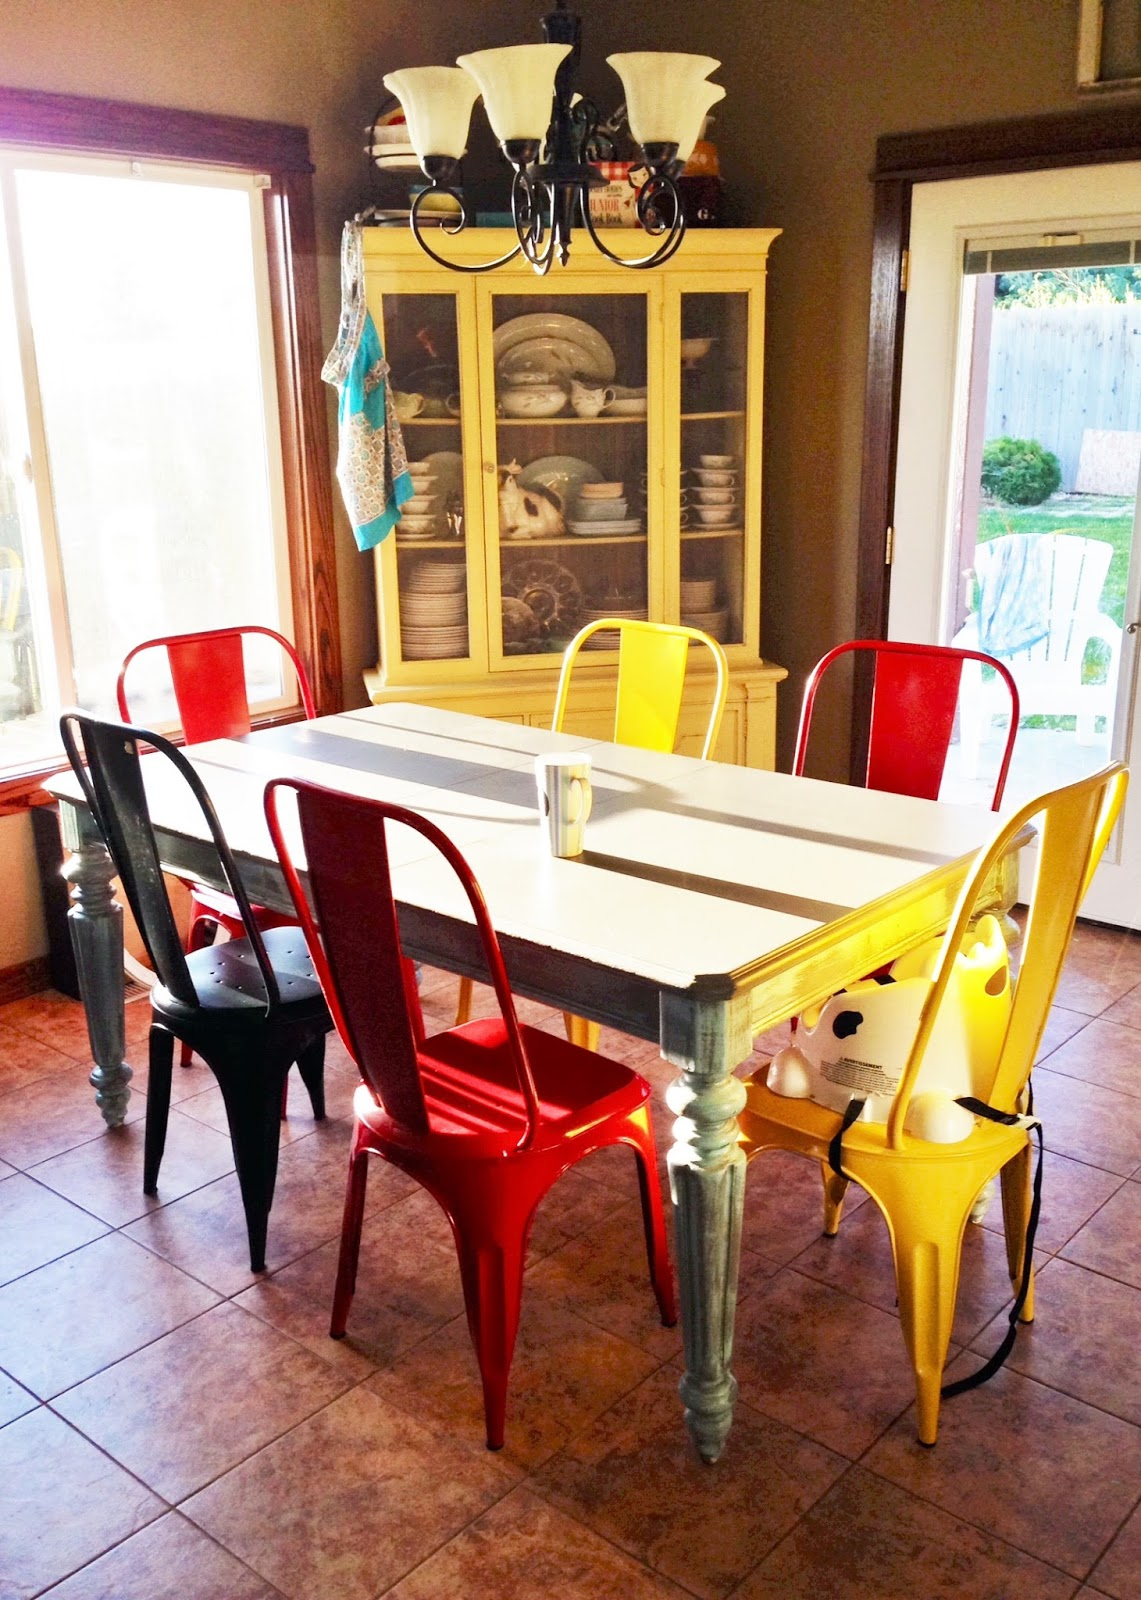 Dining Table With Metal Chairs Club And New World Market Averie Lane After In Multiple Colors Painted Yellow Hutch